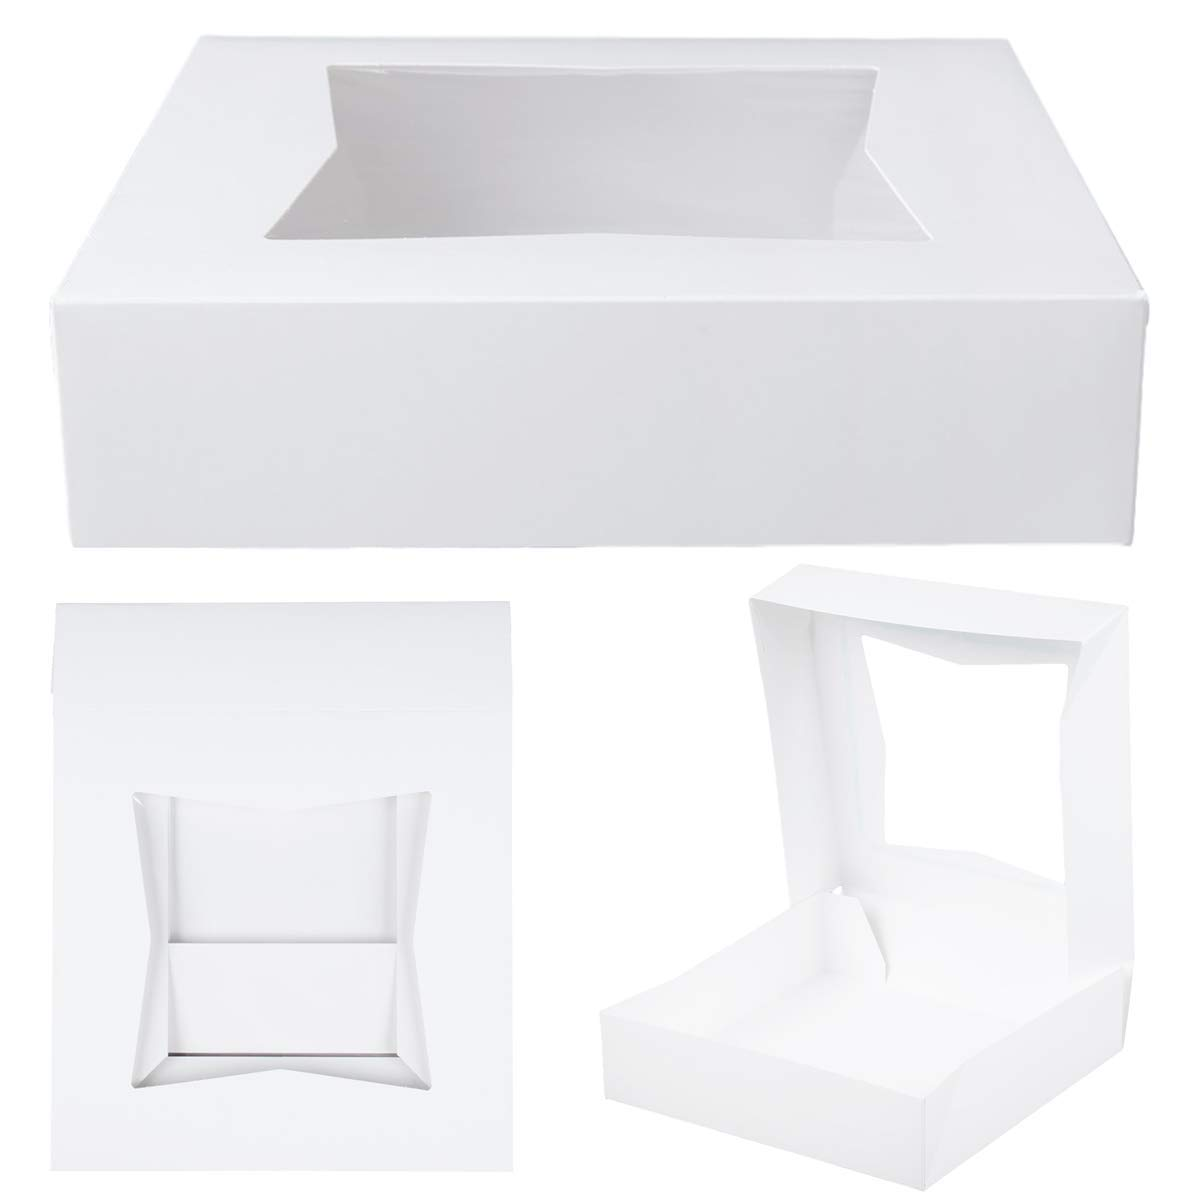 MM Foodservice White Paperboard Window Bakery Box, Auto-Popup Window Pastry Box, Pie Box, Perfect for Cakes, Donuts, Cookies, Pack of 25 (10 Inch x 10 Inch x 2 1/2 Inch)